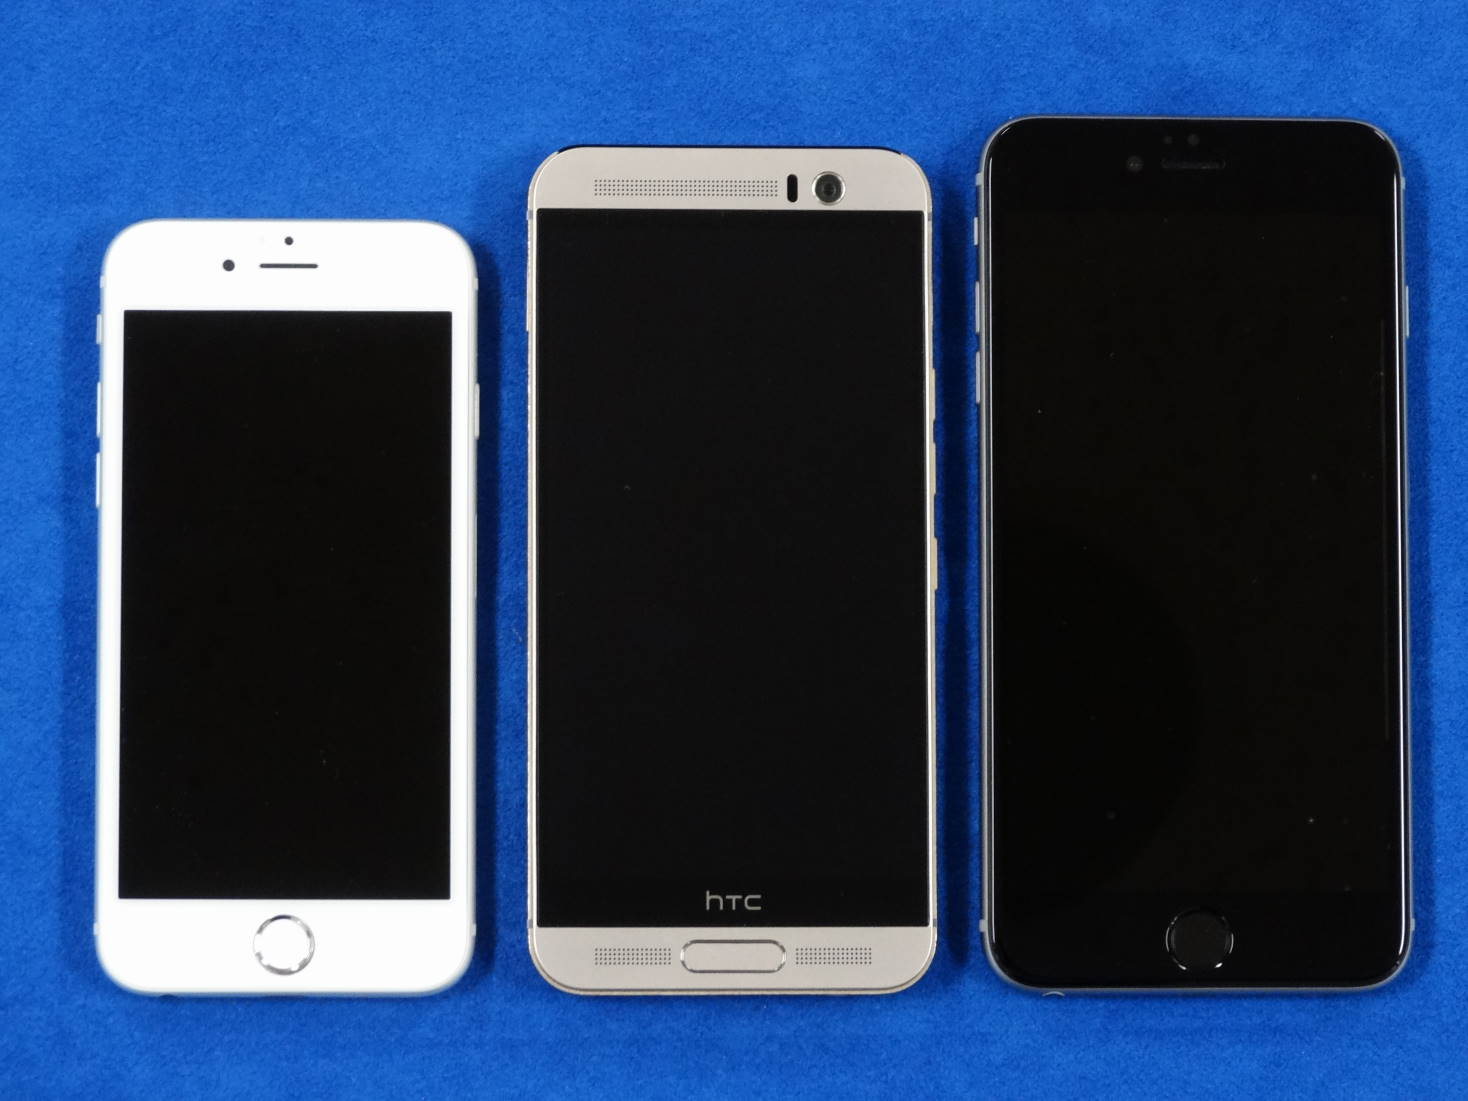 HTC One M9 Plus と iPhone 6 と iPhone 6 Plus 大きさ比較